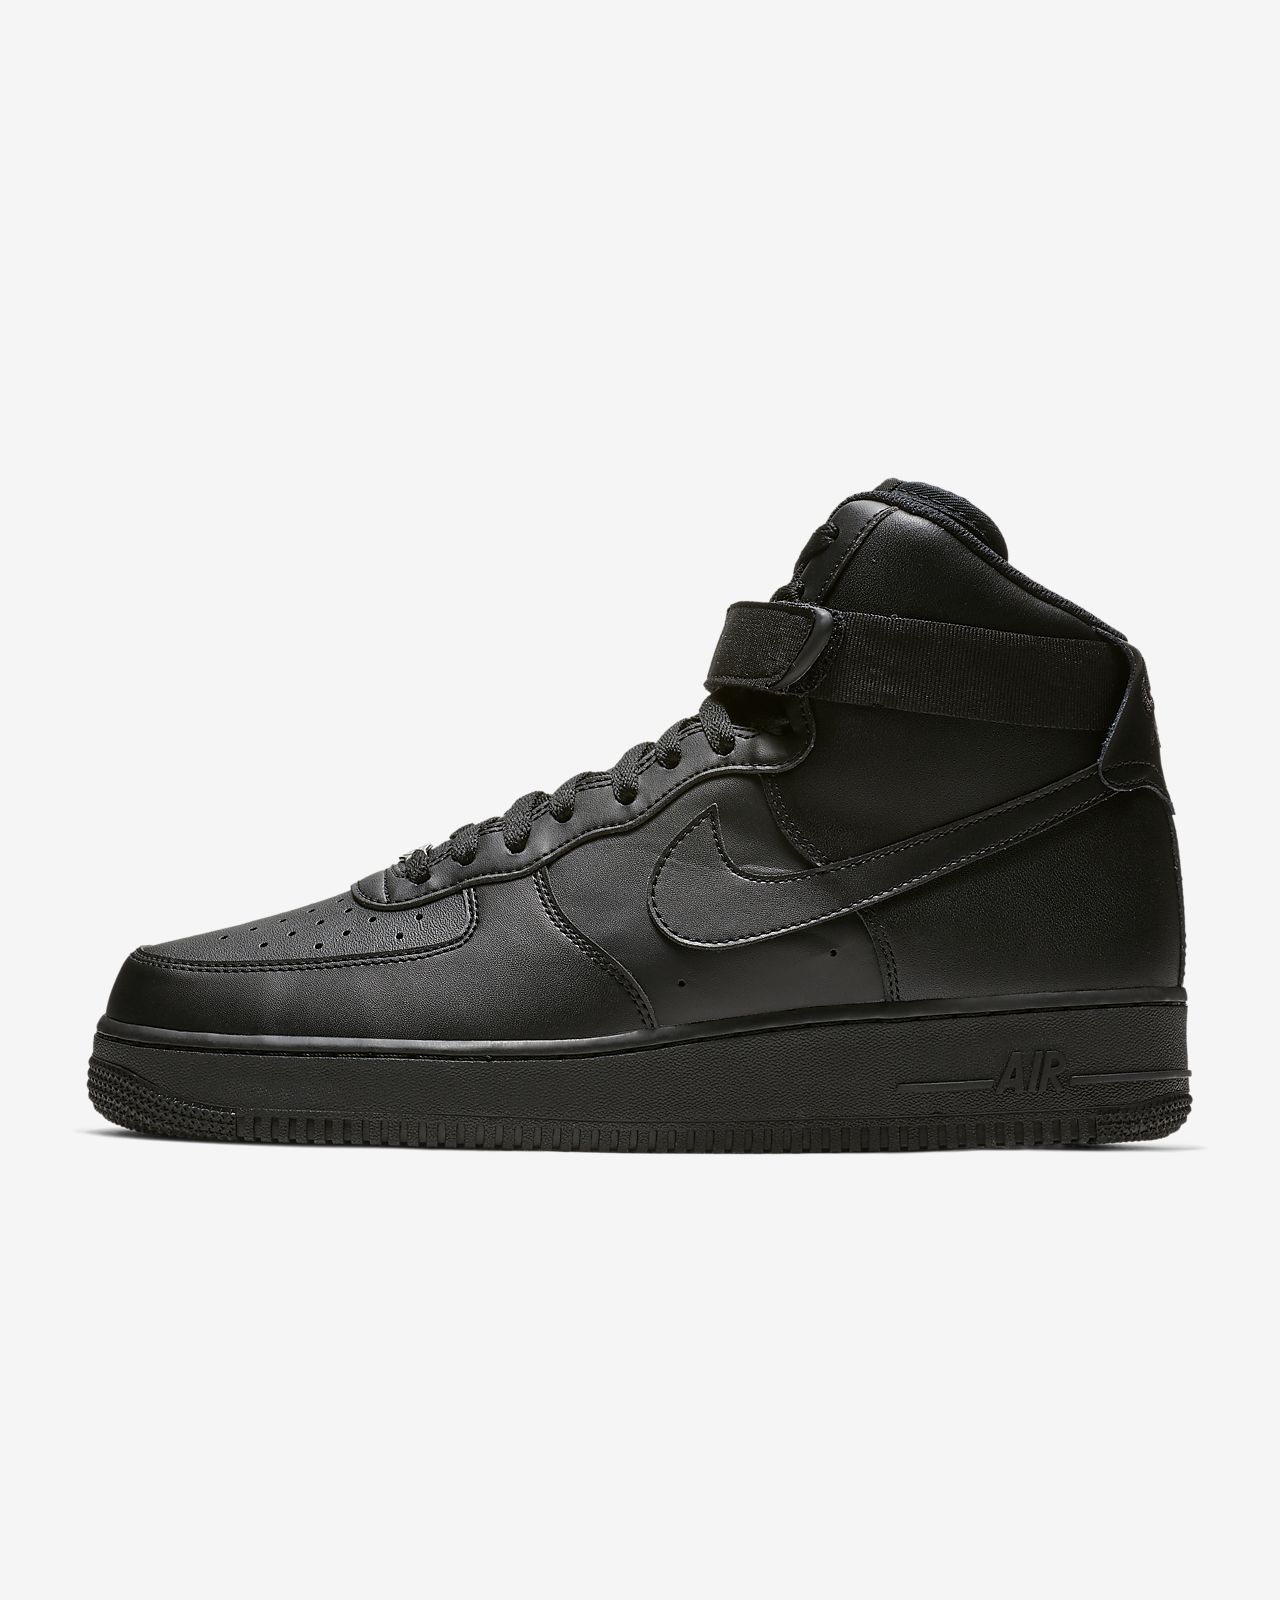 a2b6a4370cc6 Nike Air Force 1 High 07 Men's Shoe. Nike.com